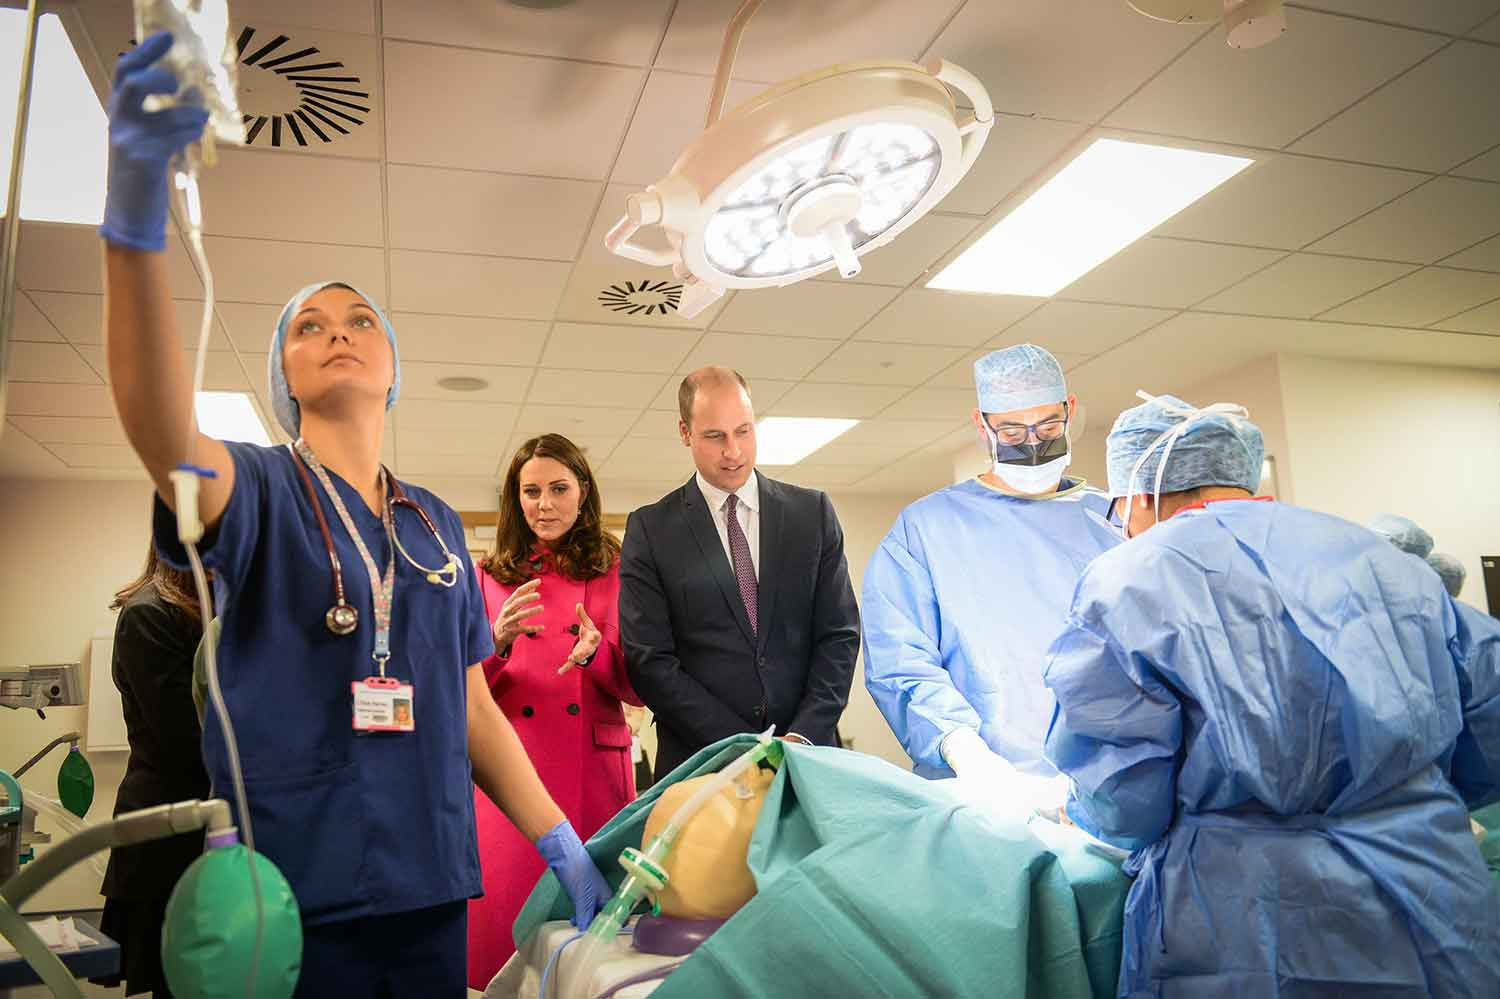 The Duke and Duchess of Cambridge visit the mock operating theatre.